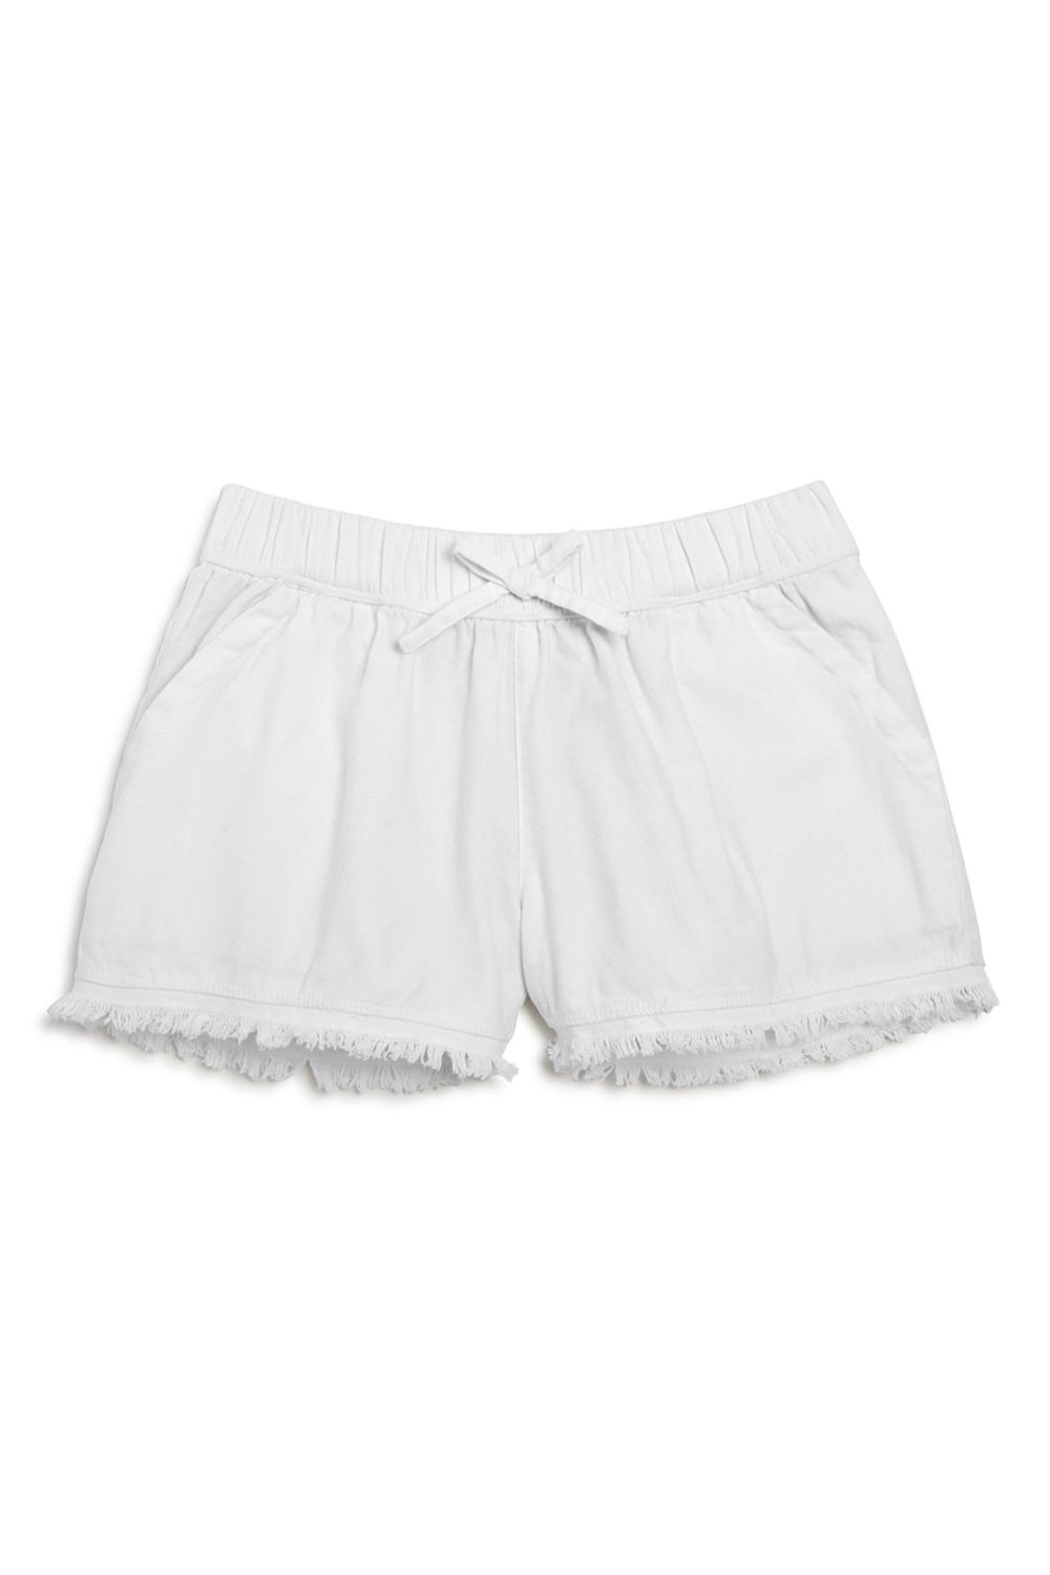 Splendid Lace Trim Shorts - Main Image